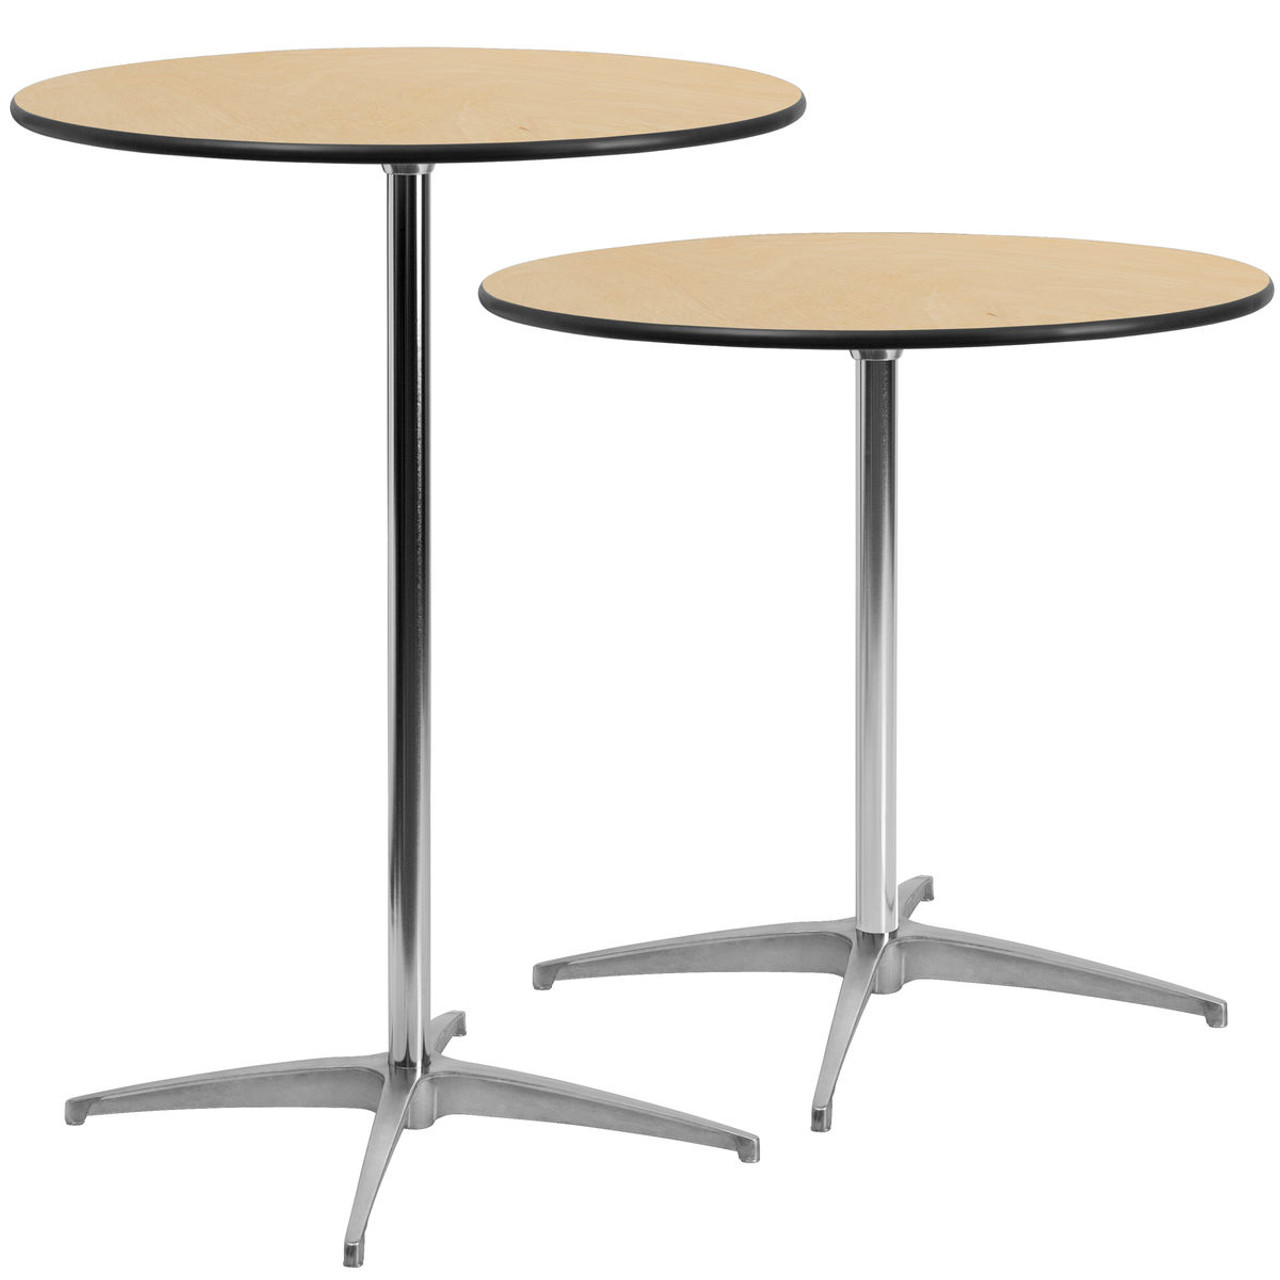 Miraculous Advantage 30 Inch Round Cafe Table Bfdh 30Pedtblrd Tdr Theyellowbook Wood Chair Design Ideas Theyellowbookinfo